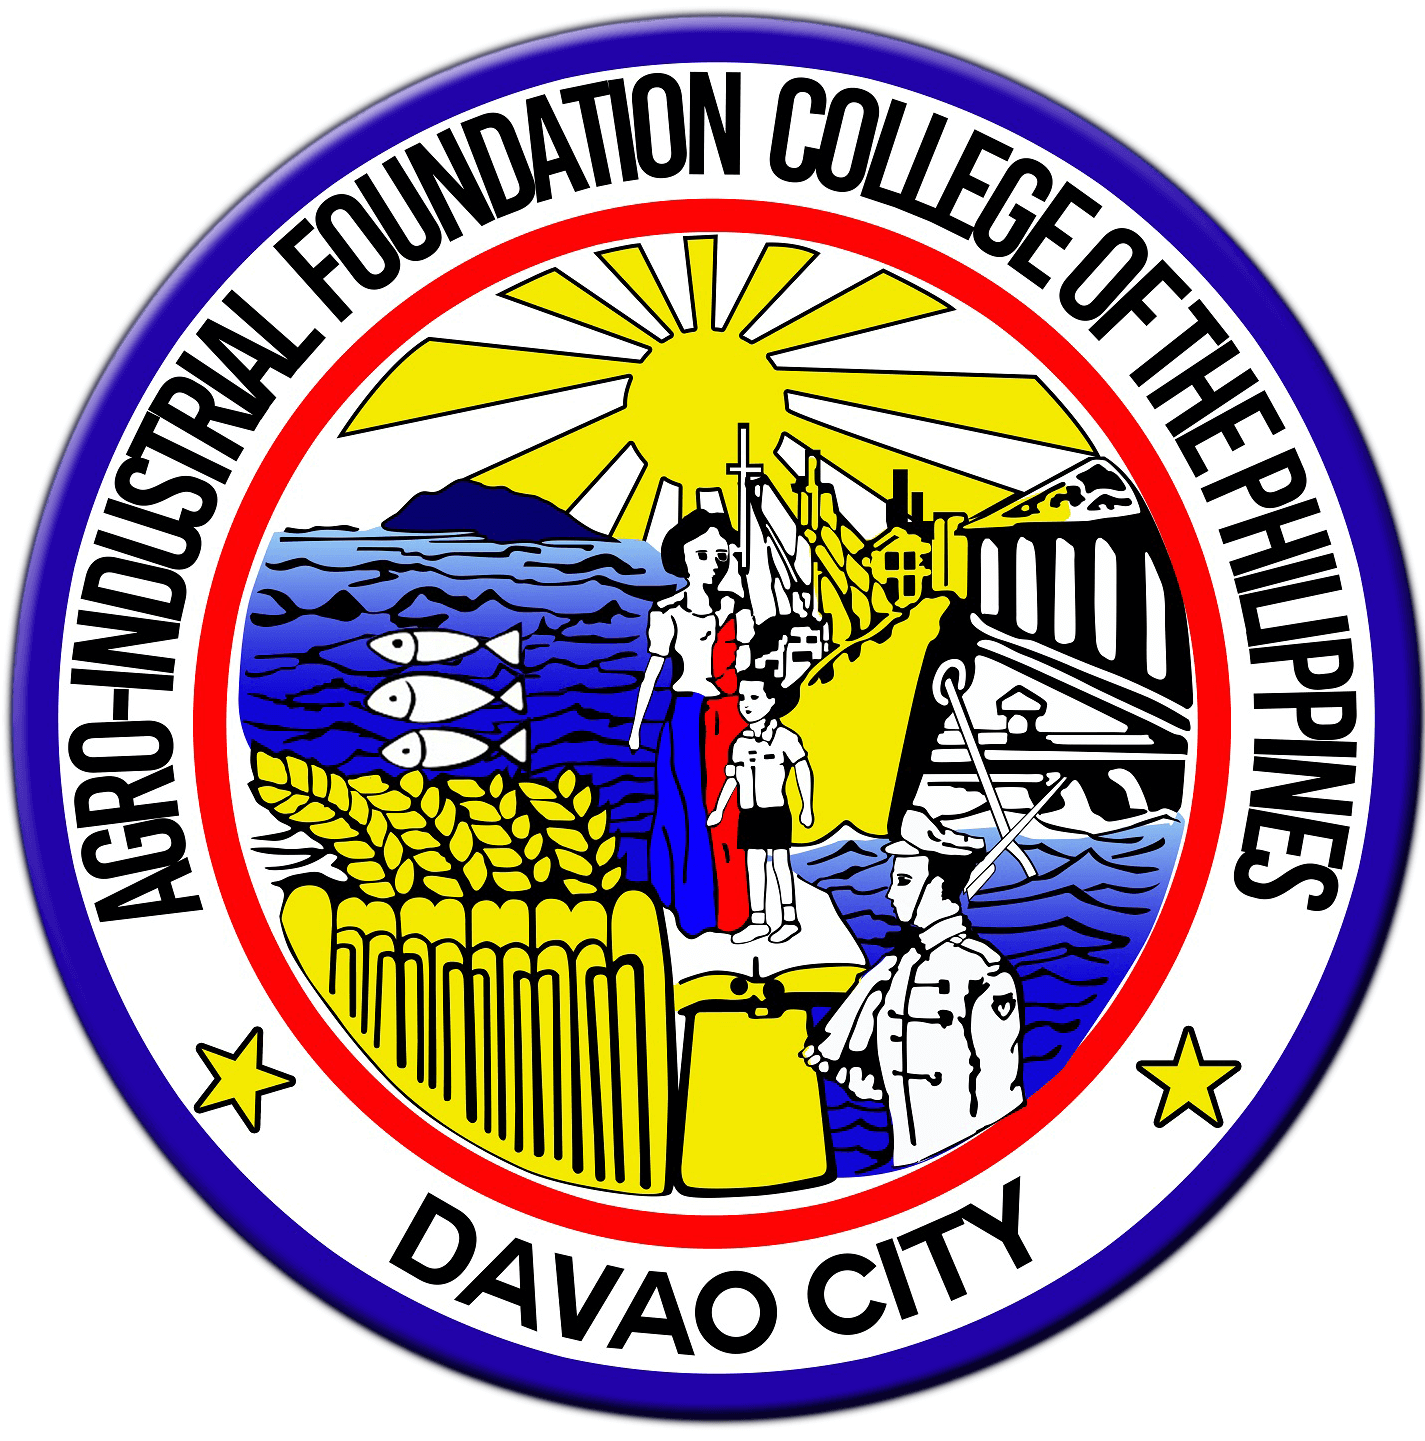 Agro-Industrial Foundation College of the Philippines (AIFCP) Logo